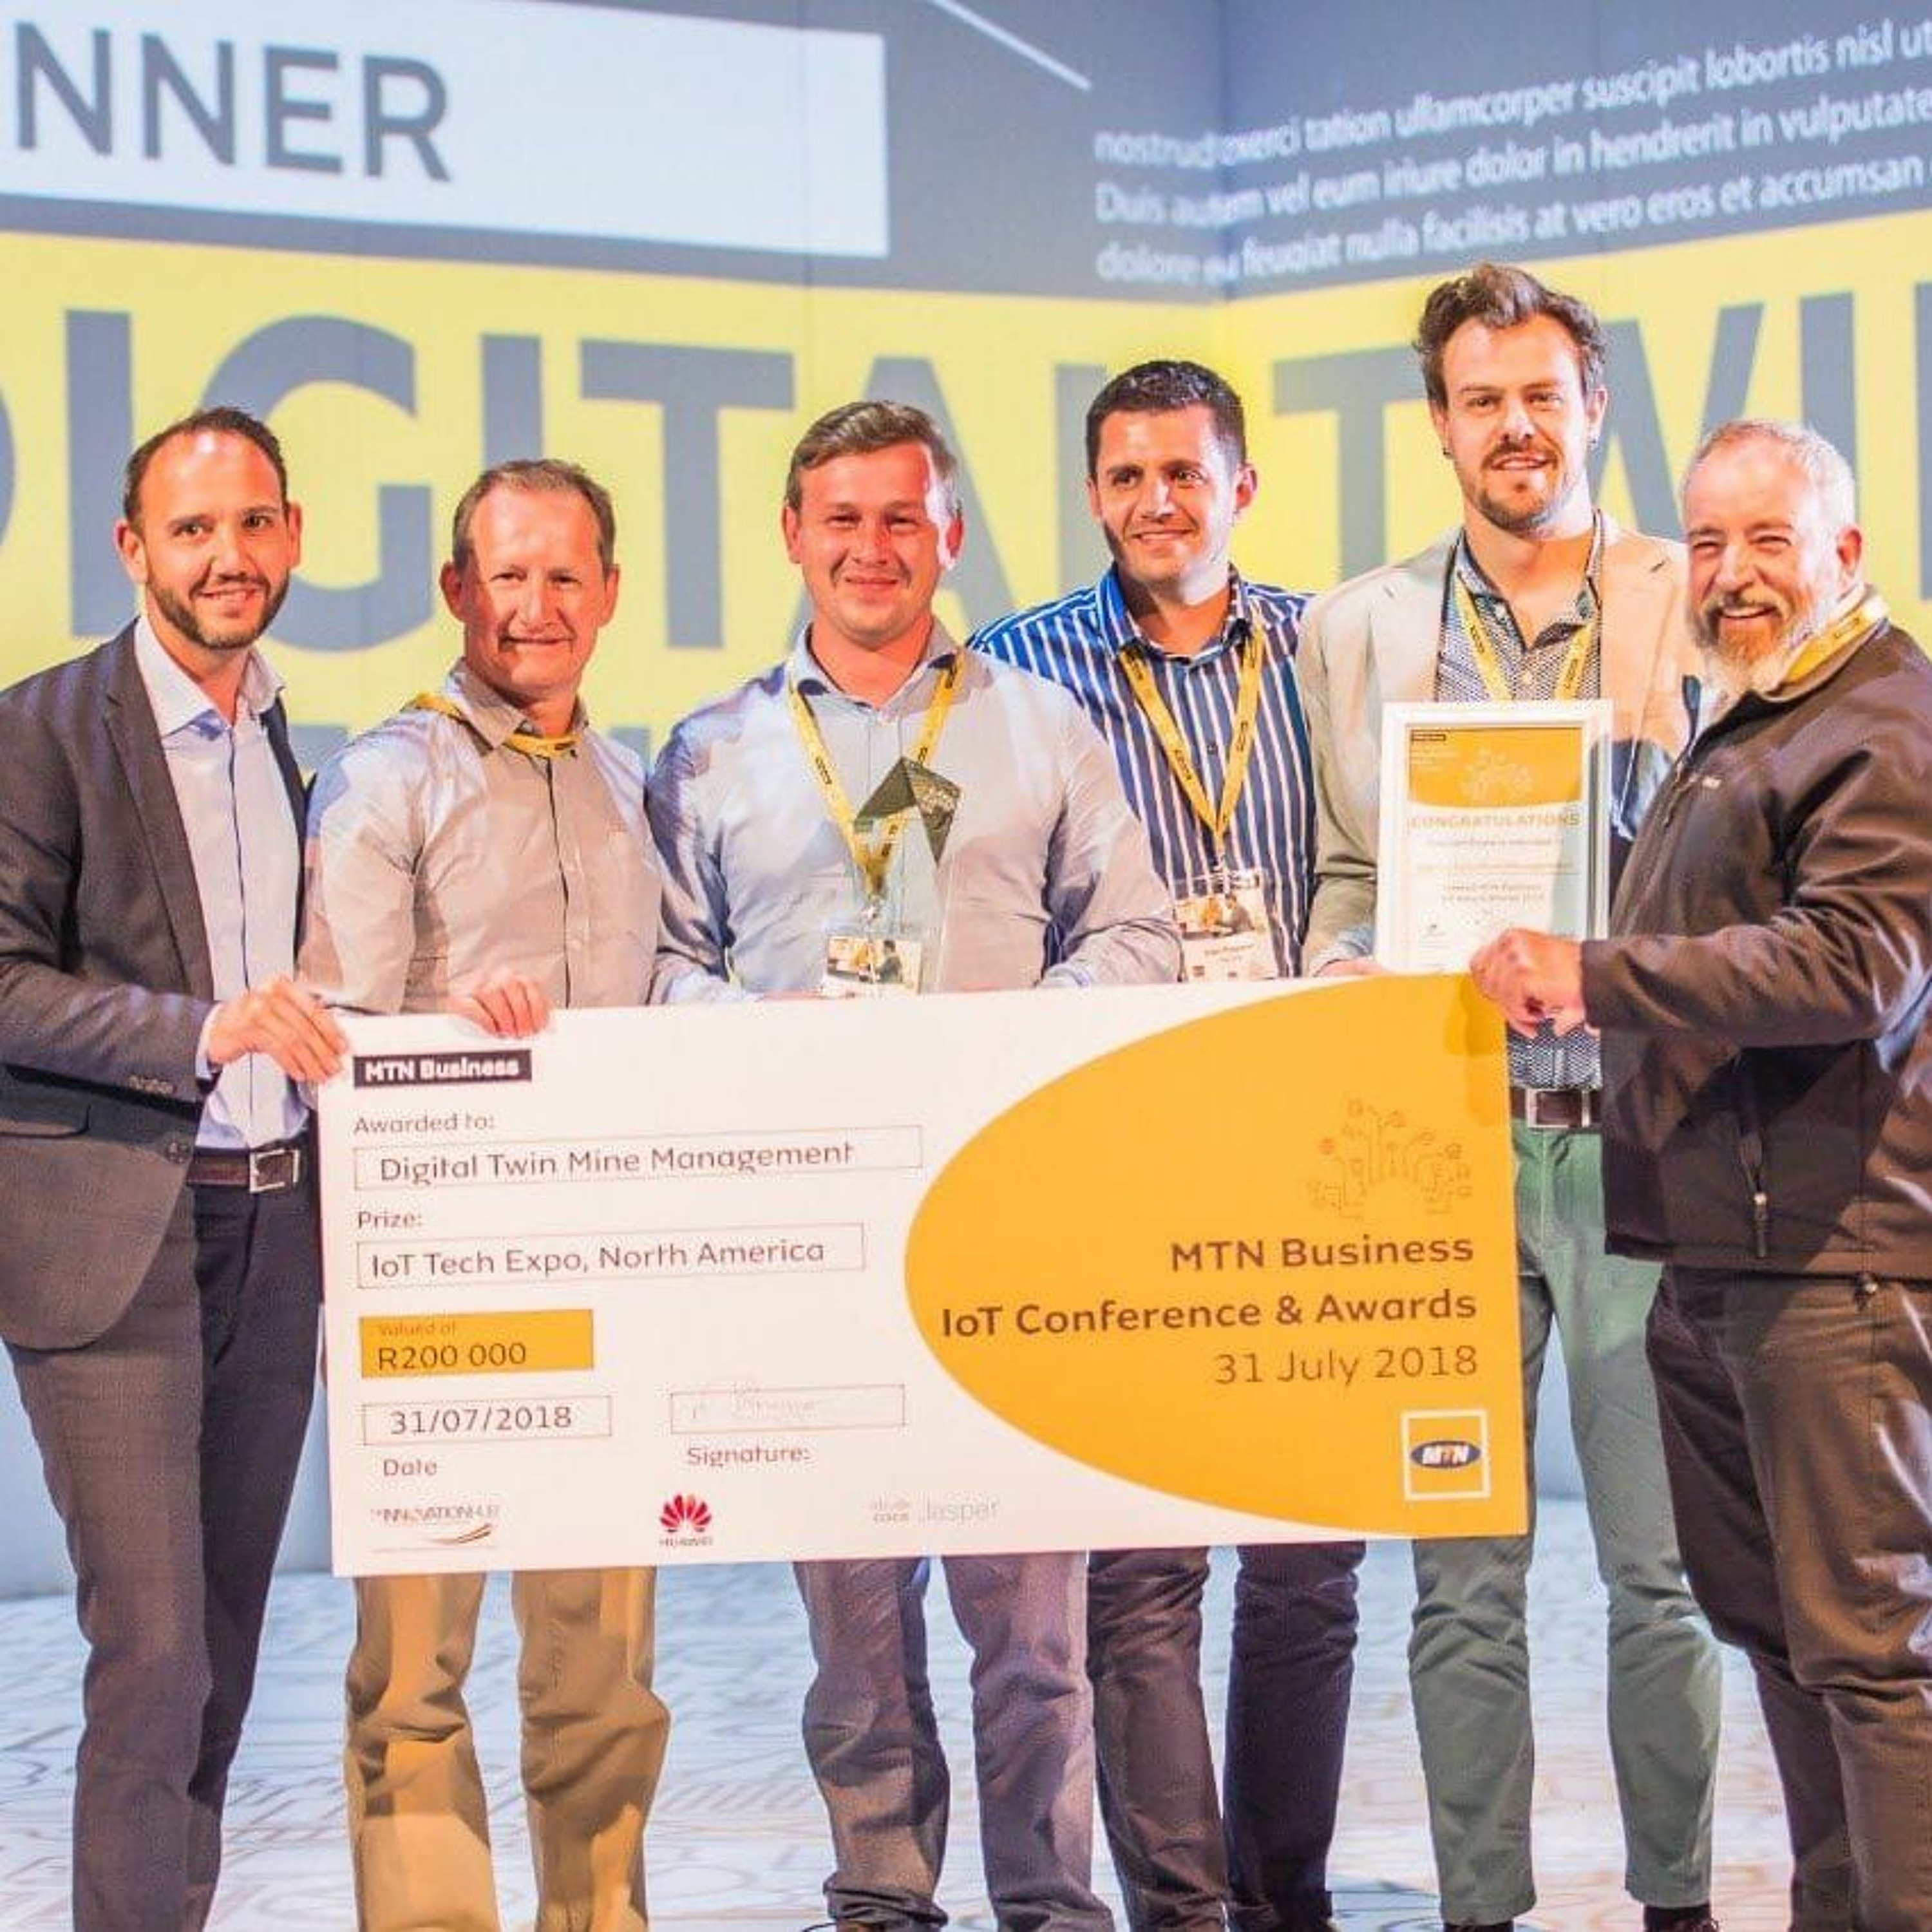 003 Digital Twin Mine Management wins wins best Industry 4.0 solution at MTN IoT Awards 2018!